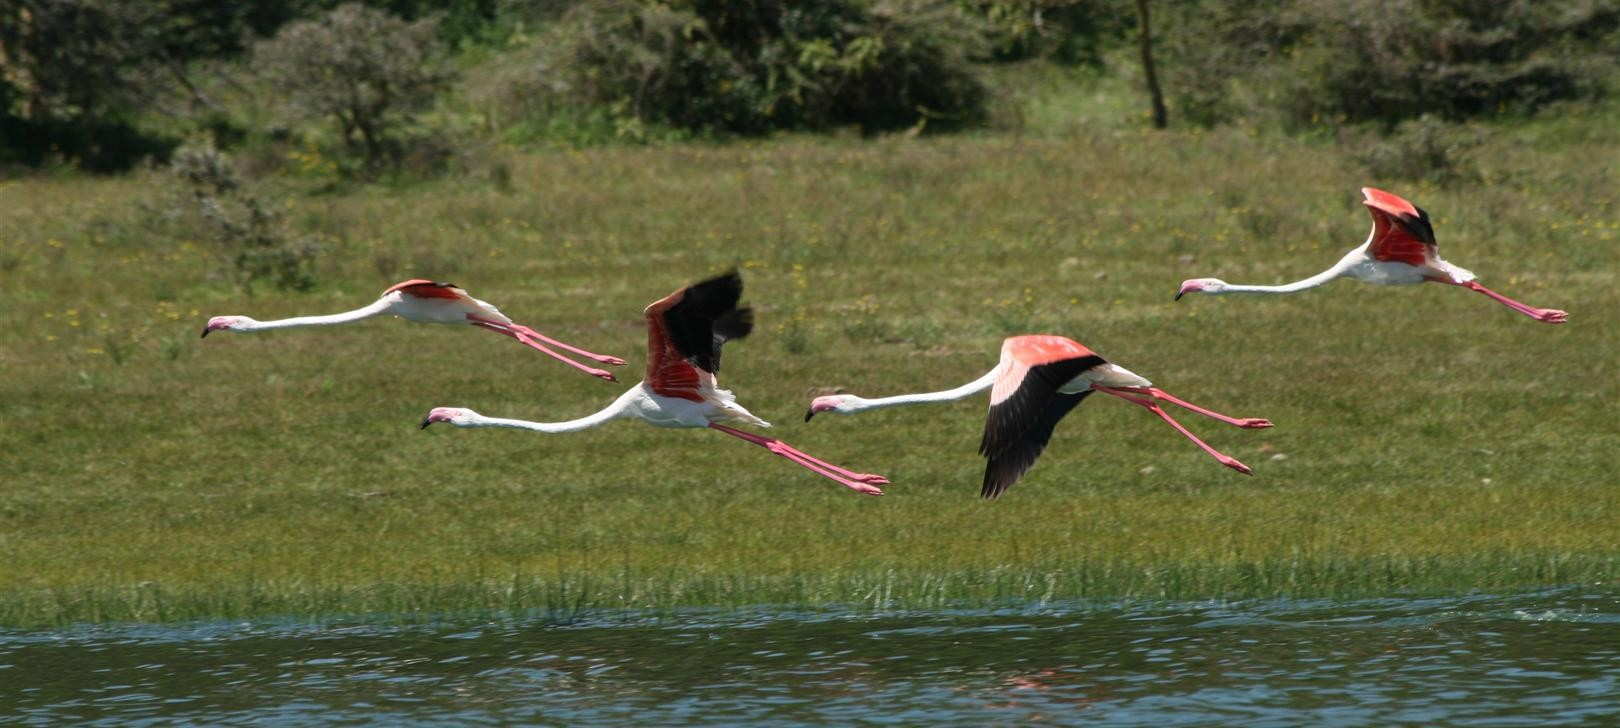 flamingo in flight from Oloiden Lake, Kongoni (photo by Steward Shang)